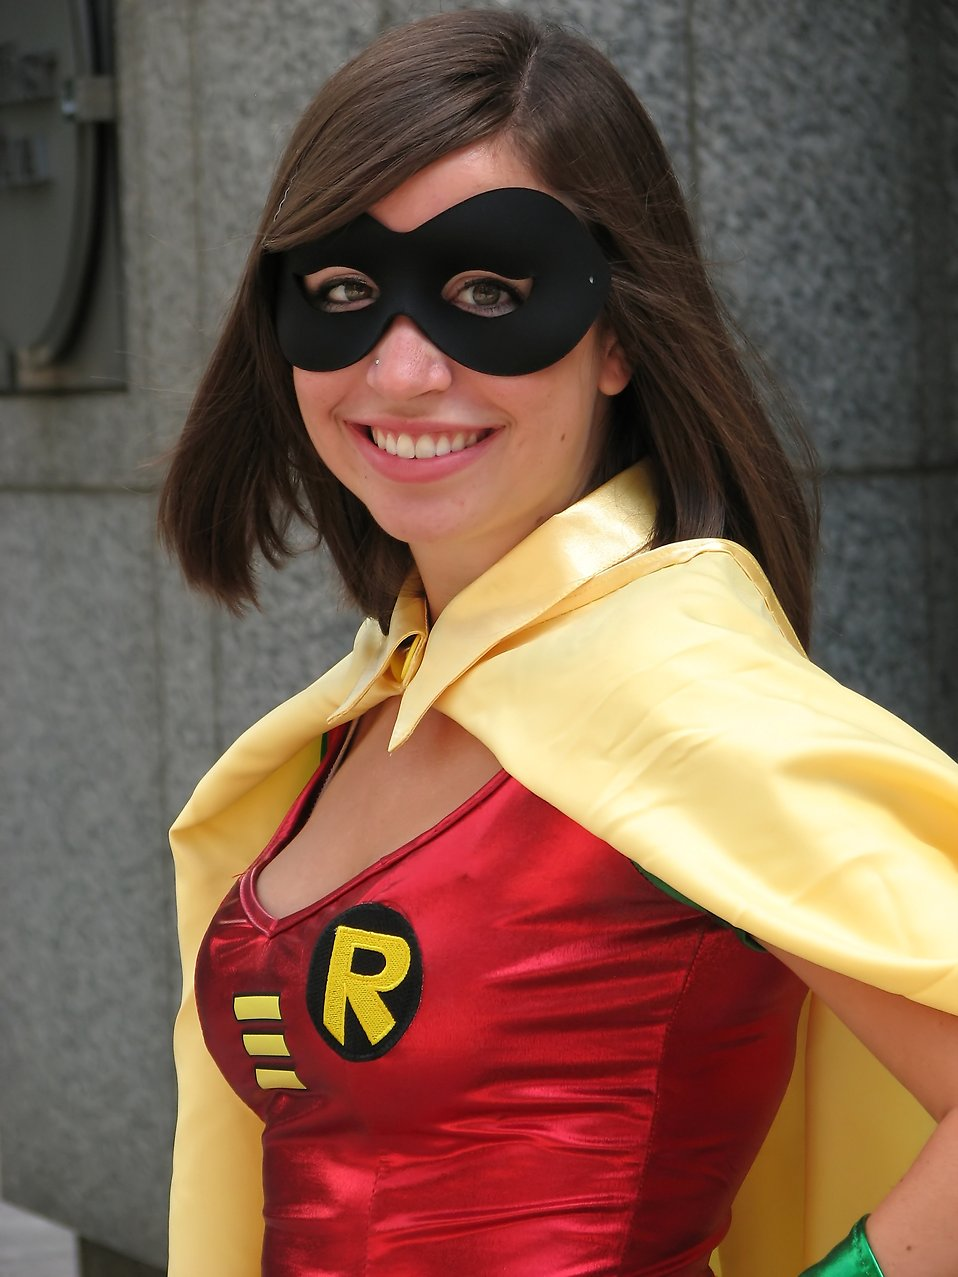 A beautiful girl in a Robin costume at Dragoncon 2009 in Atlanta, Georgia : Free Stock Photo